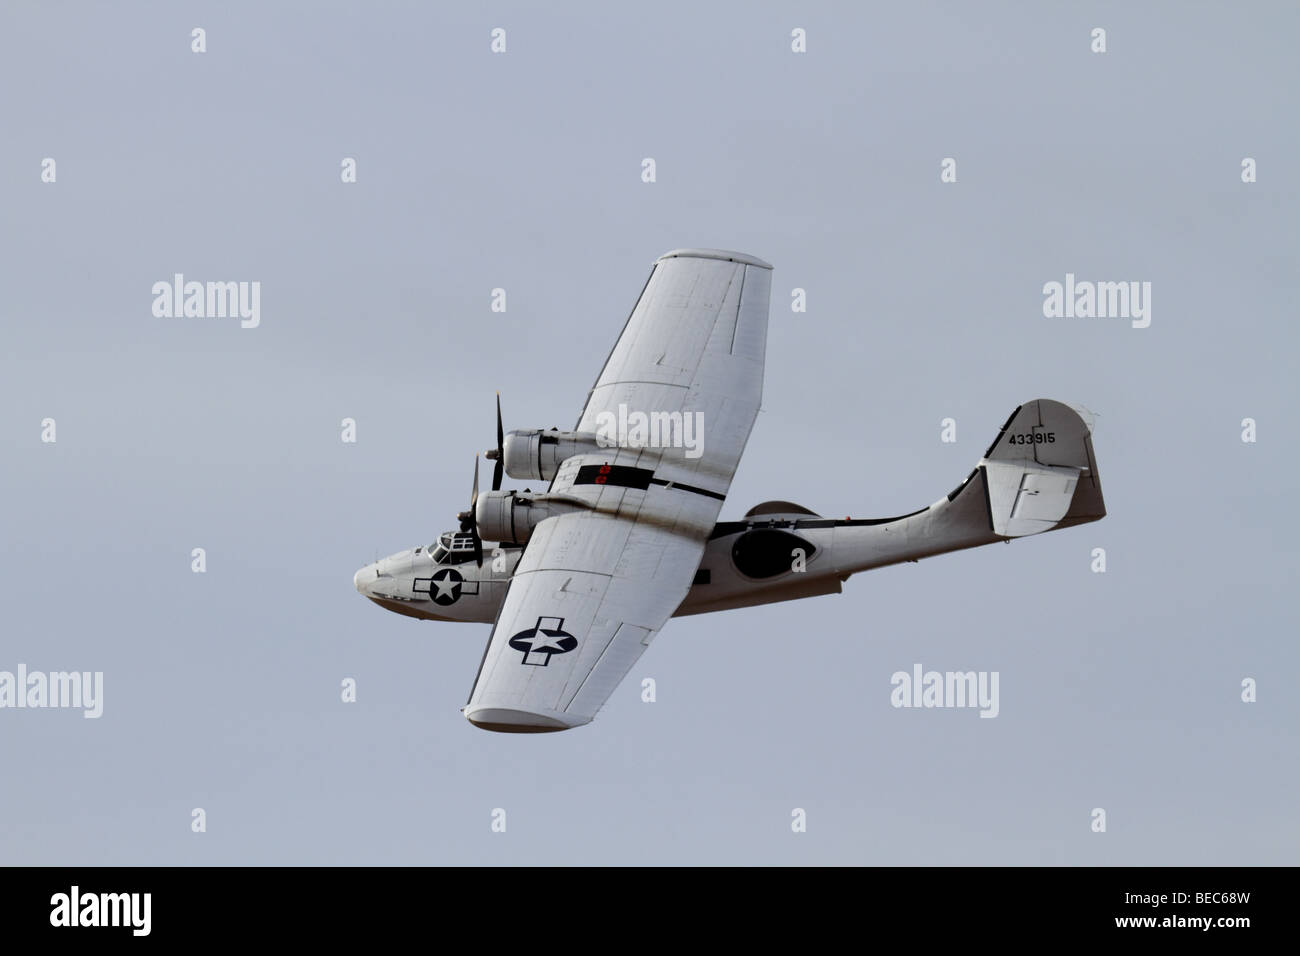 Catalina Flying Boat displays at Southport Airshow 2009 - Stock Image